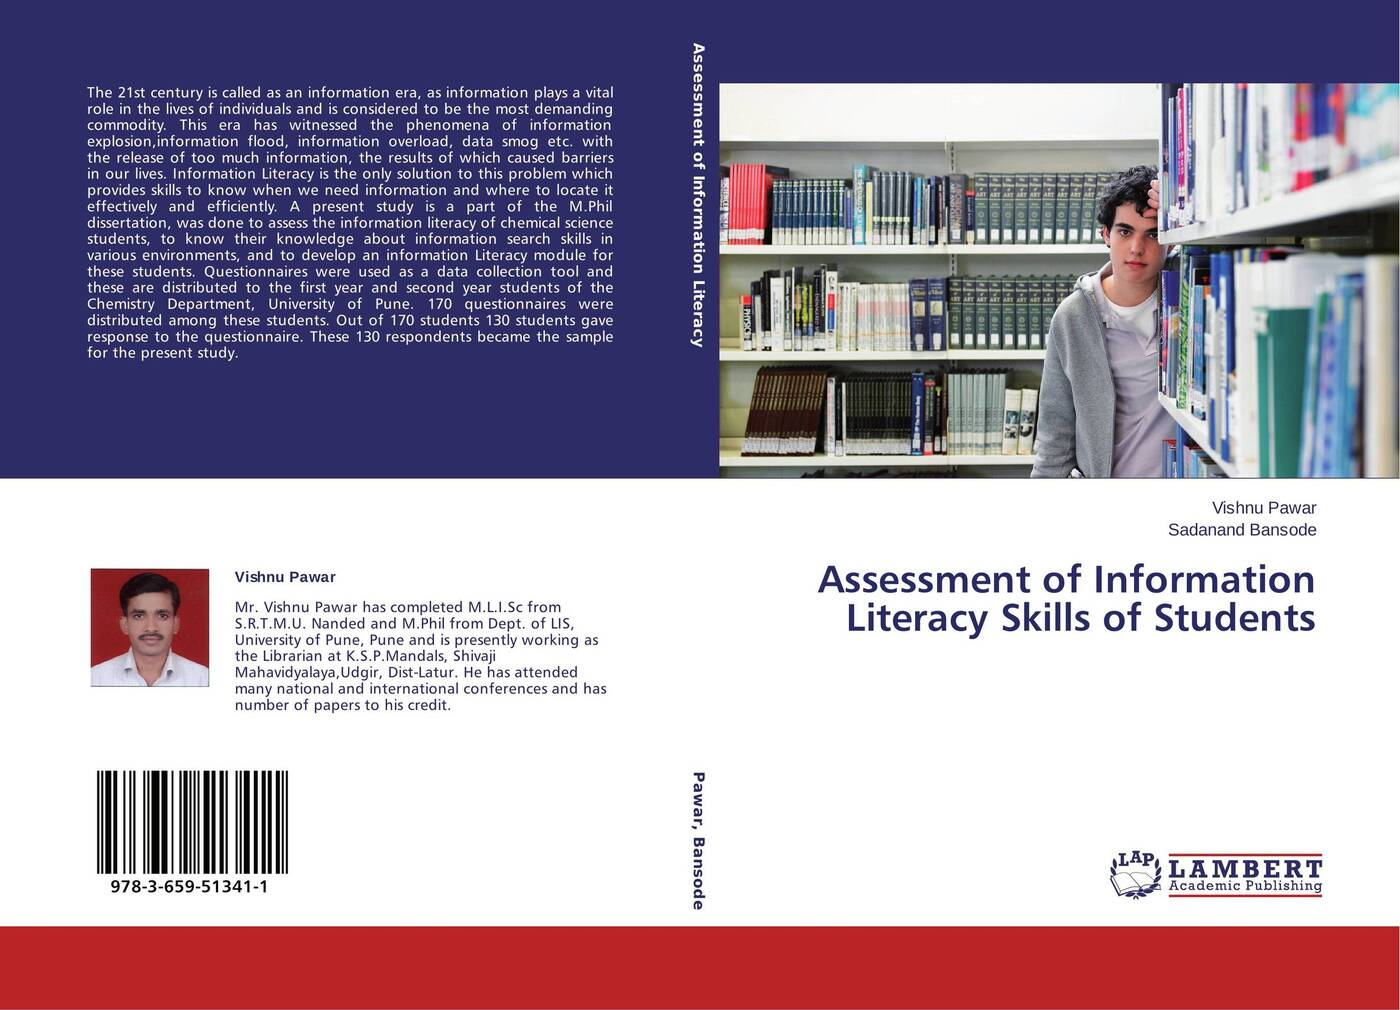 Vishnu Pawar and Sadanand Bansode Assessment of Information Literacy Skills of Students patrick allo putting information first luciano floridi and the philosophy of information